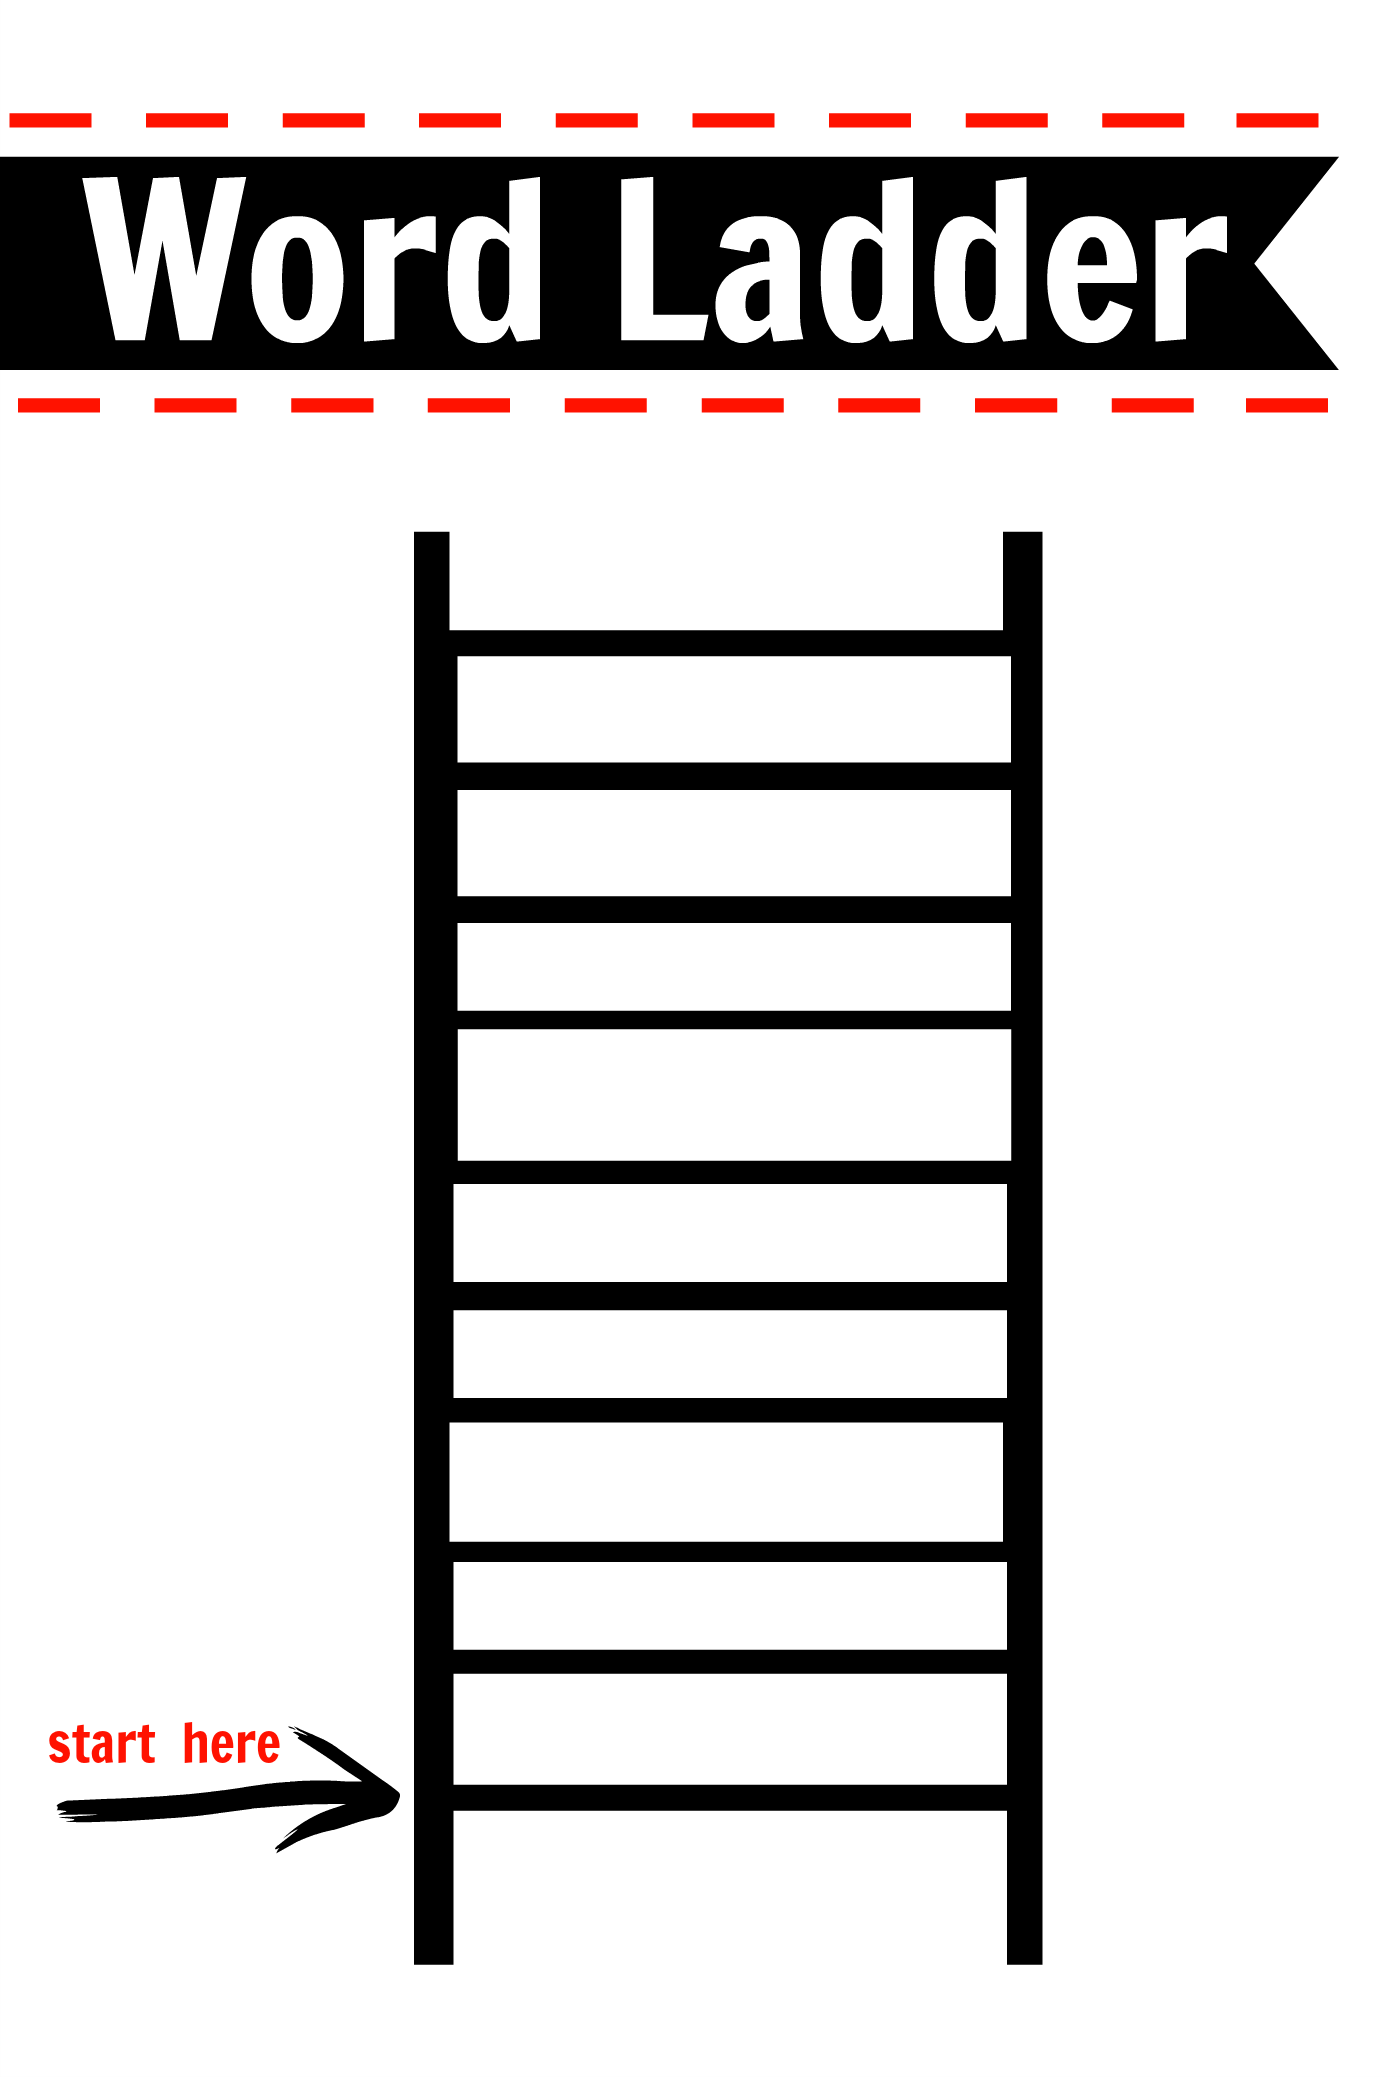 Worksheets Word Ladder Worksheets after school activity word ladders printable free no time you will need a ladder click on the image above and print pencil kid to do all rest of work